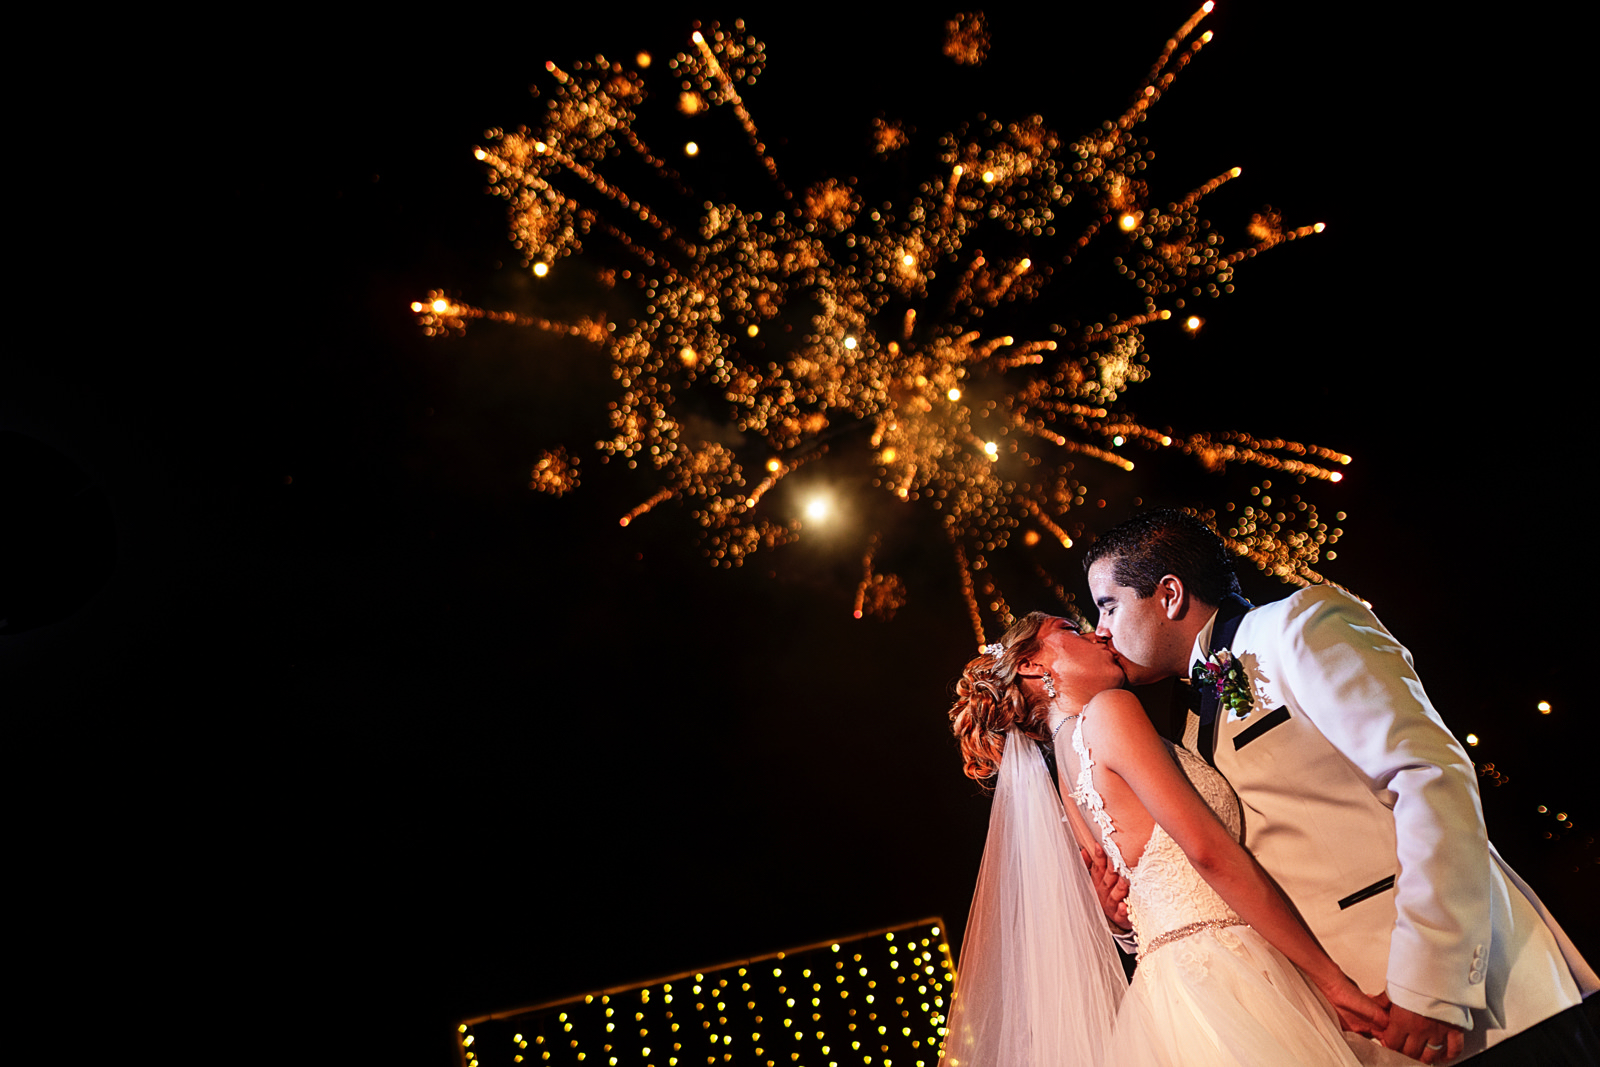 Bride and groom kiss under the fireworks at the end of their first dance as married couple